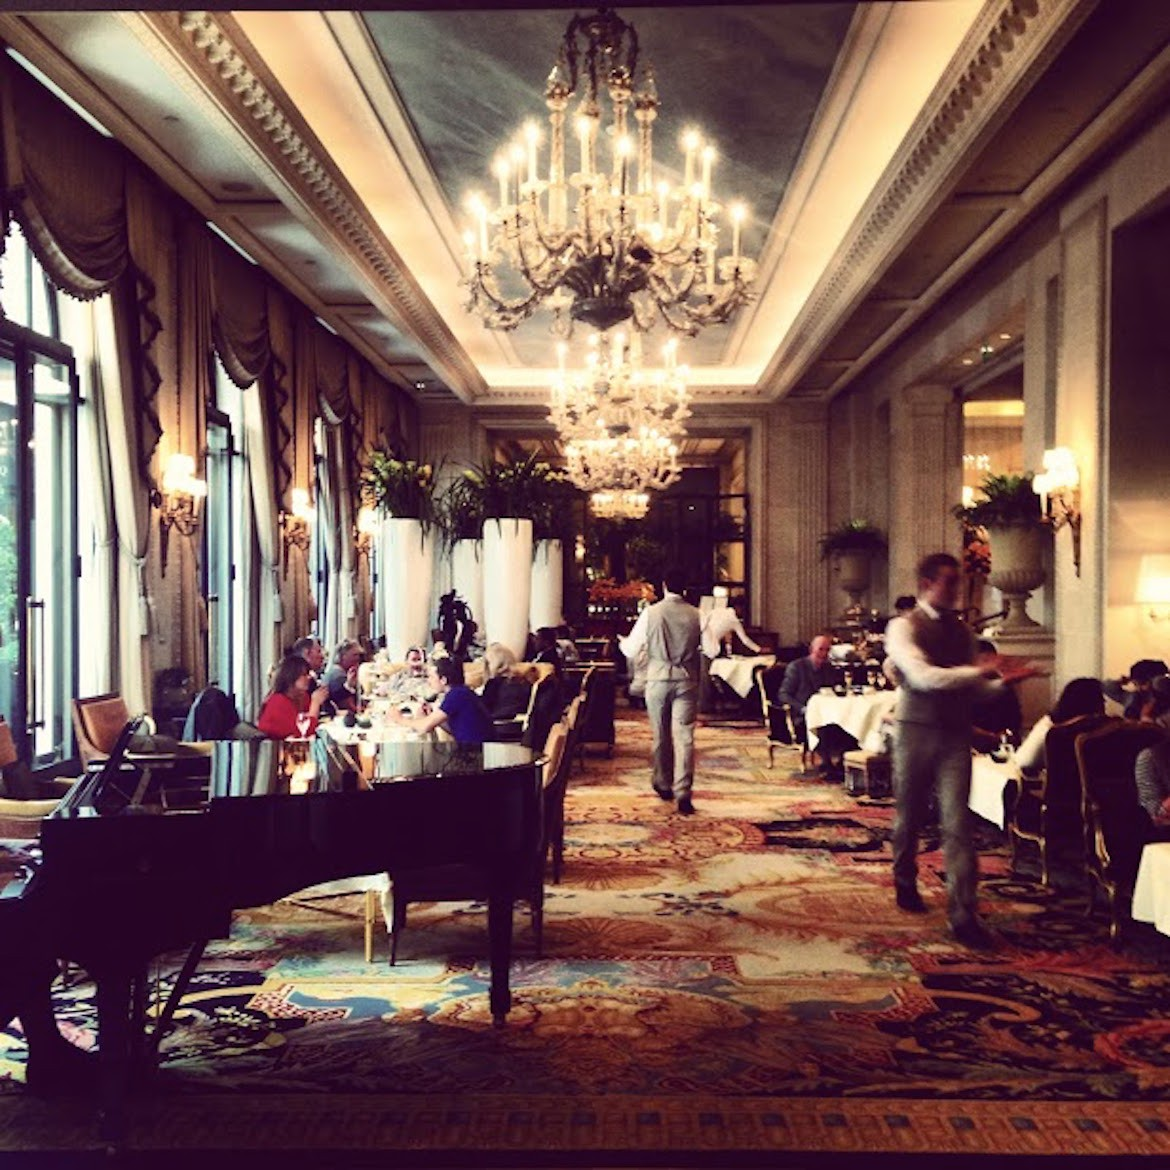 Five o' clock tea time at Georges V  (Four Seasons Hotel) - a 5***** experience